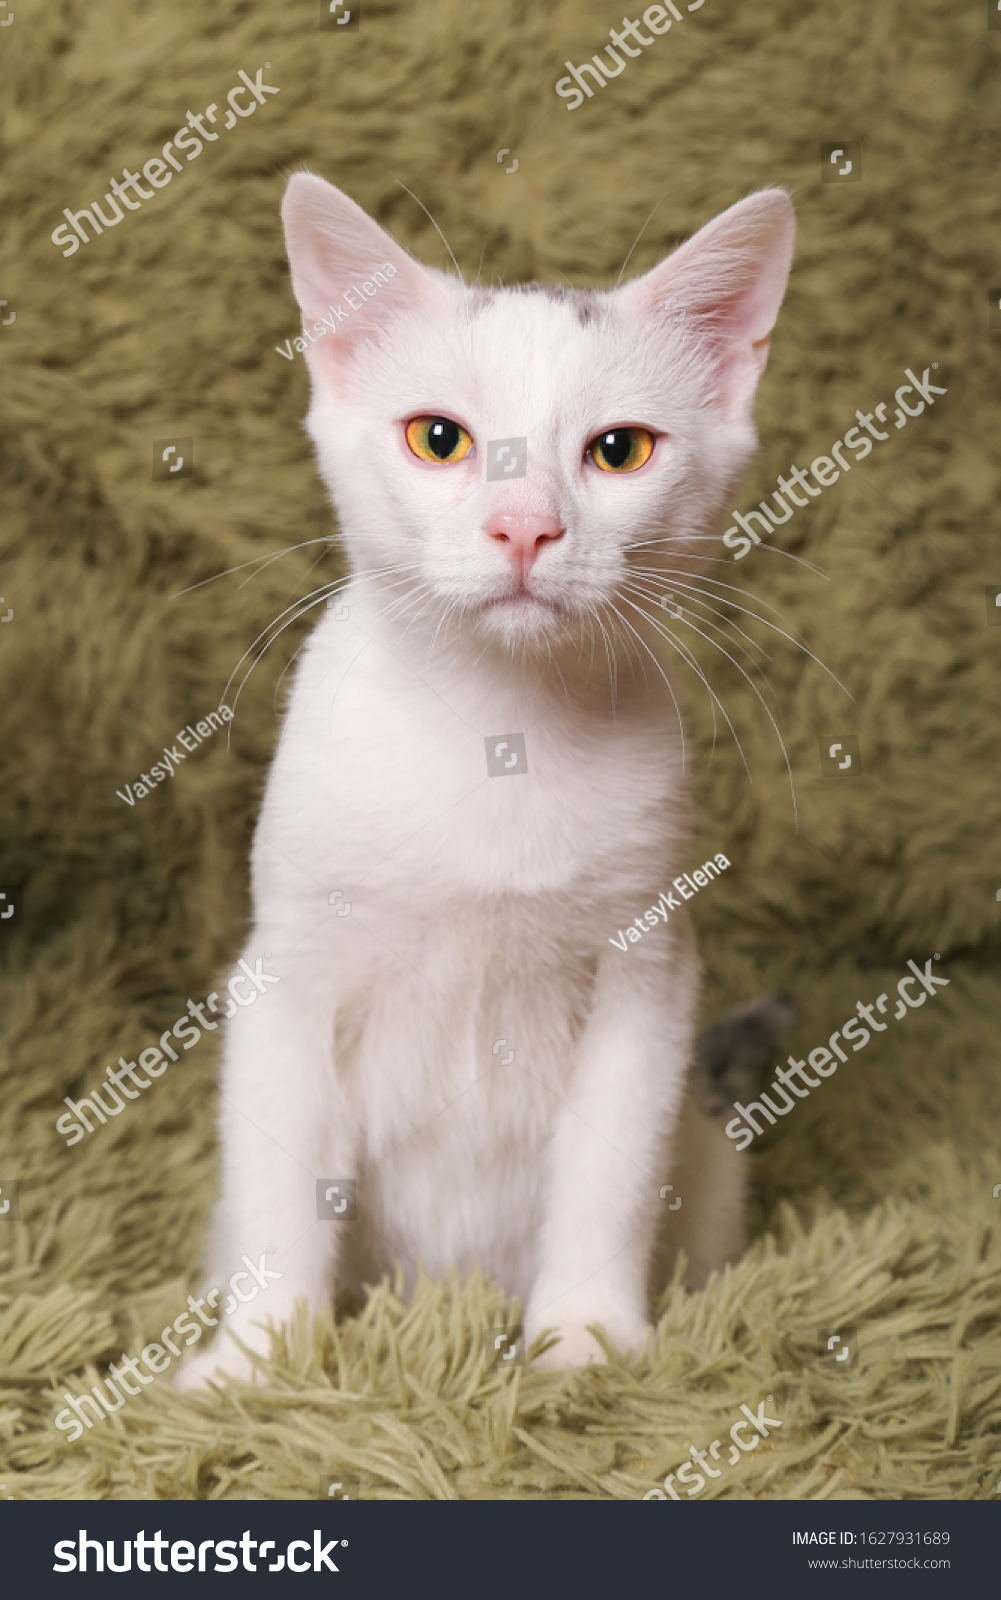 Beautiful White Cat Cute Kitten Sitting Stock Photo Edit Now 1627931689